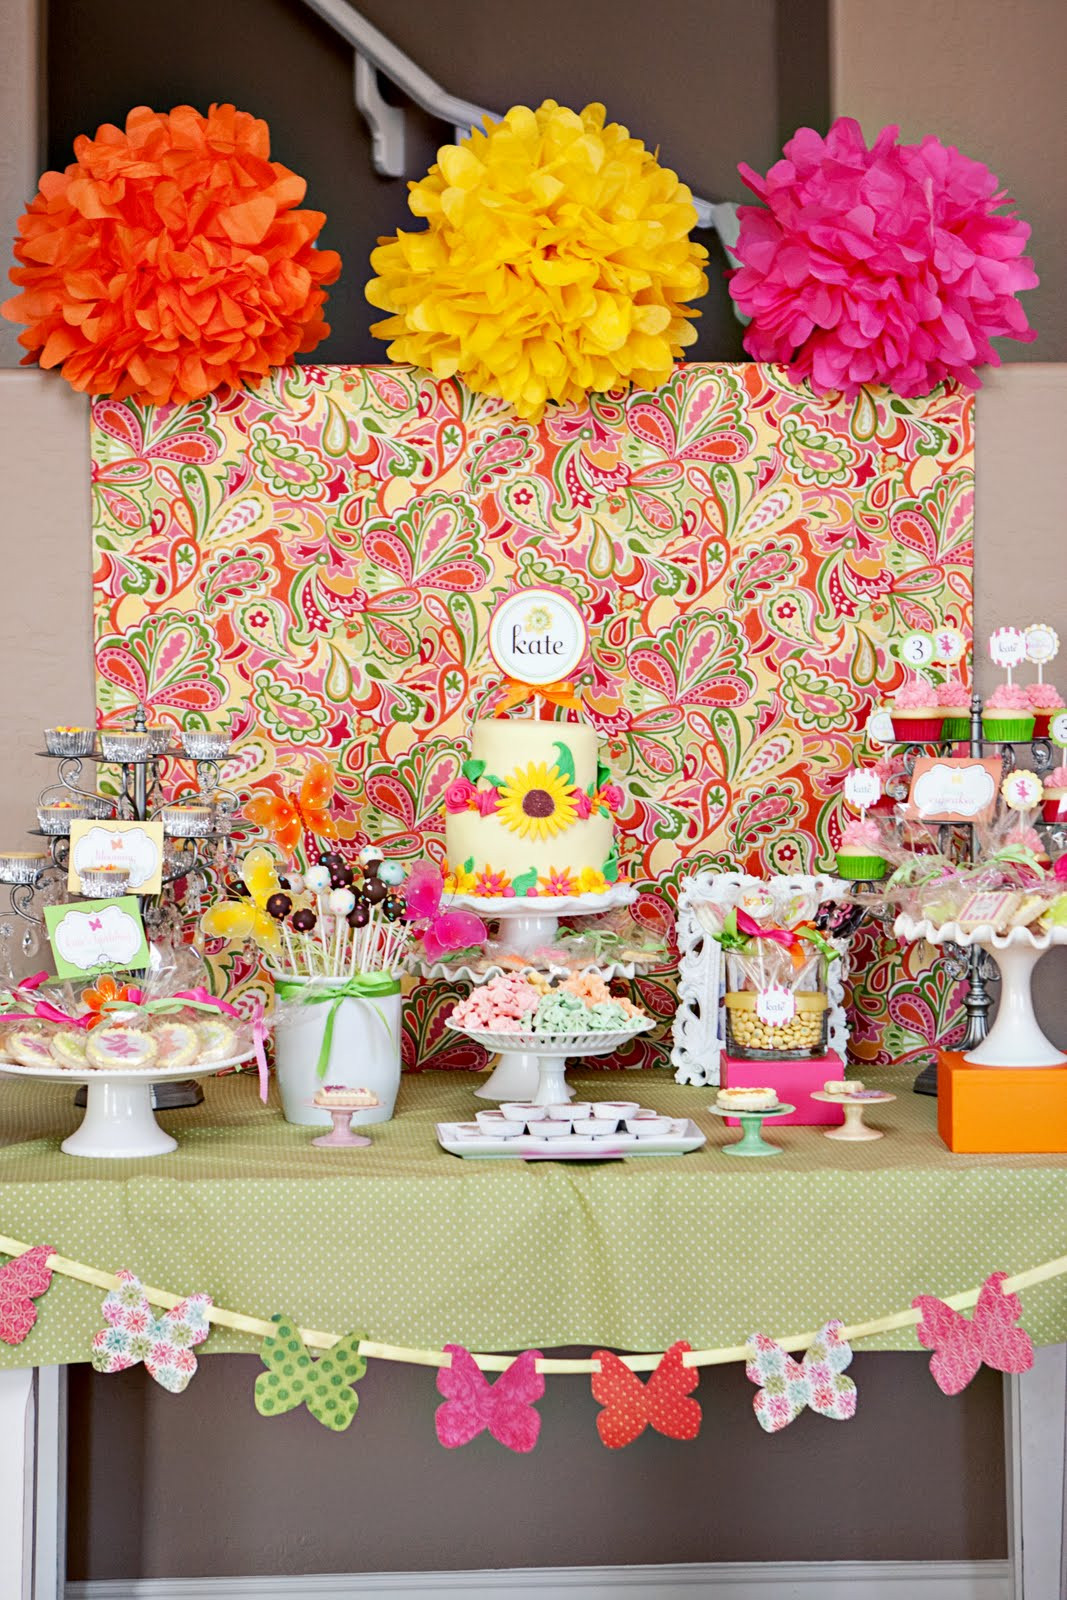 Best ideas about Garden Birthday Party . Save or Pin Kate's Fairy Garden Birthday Party… Now.